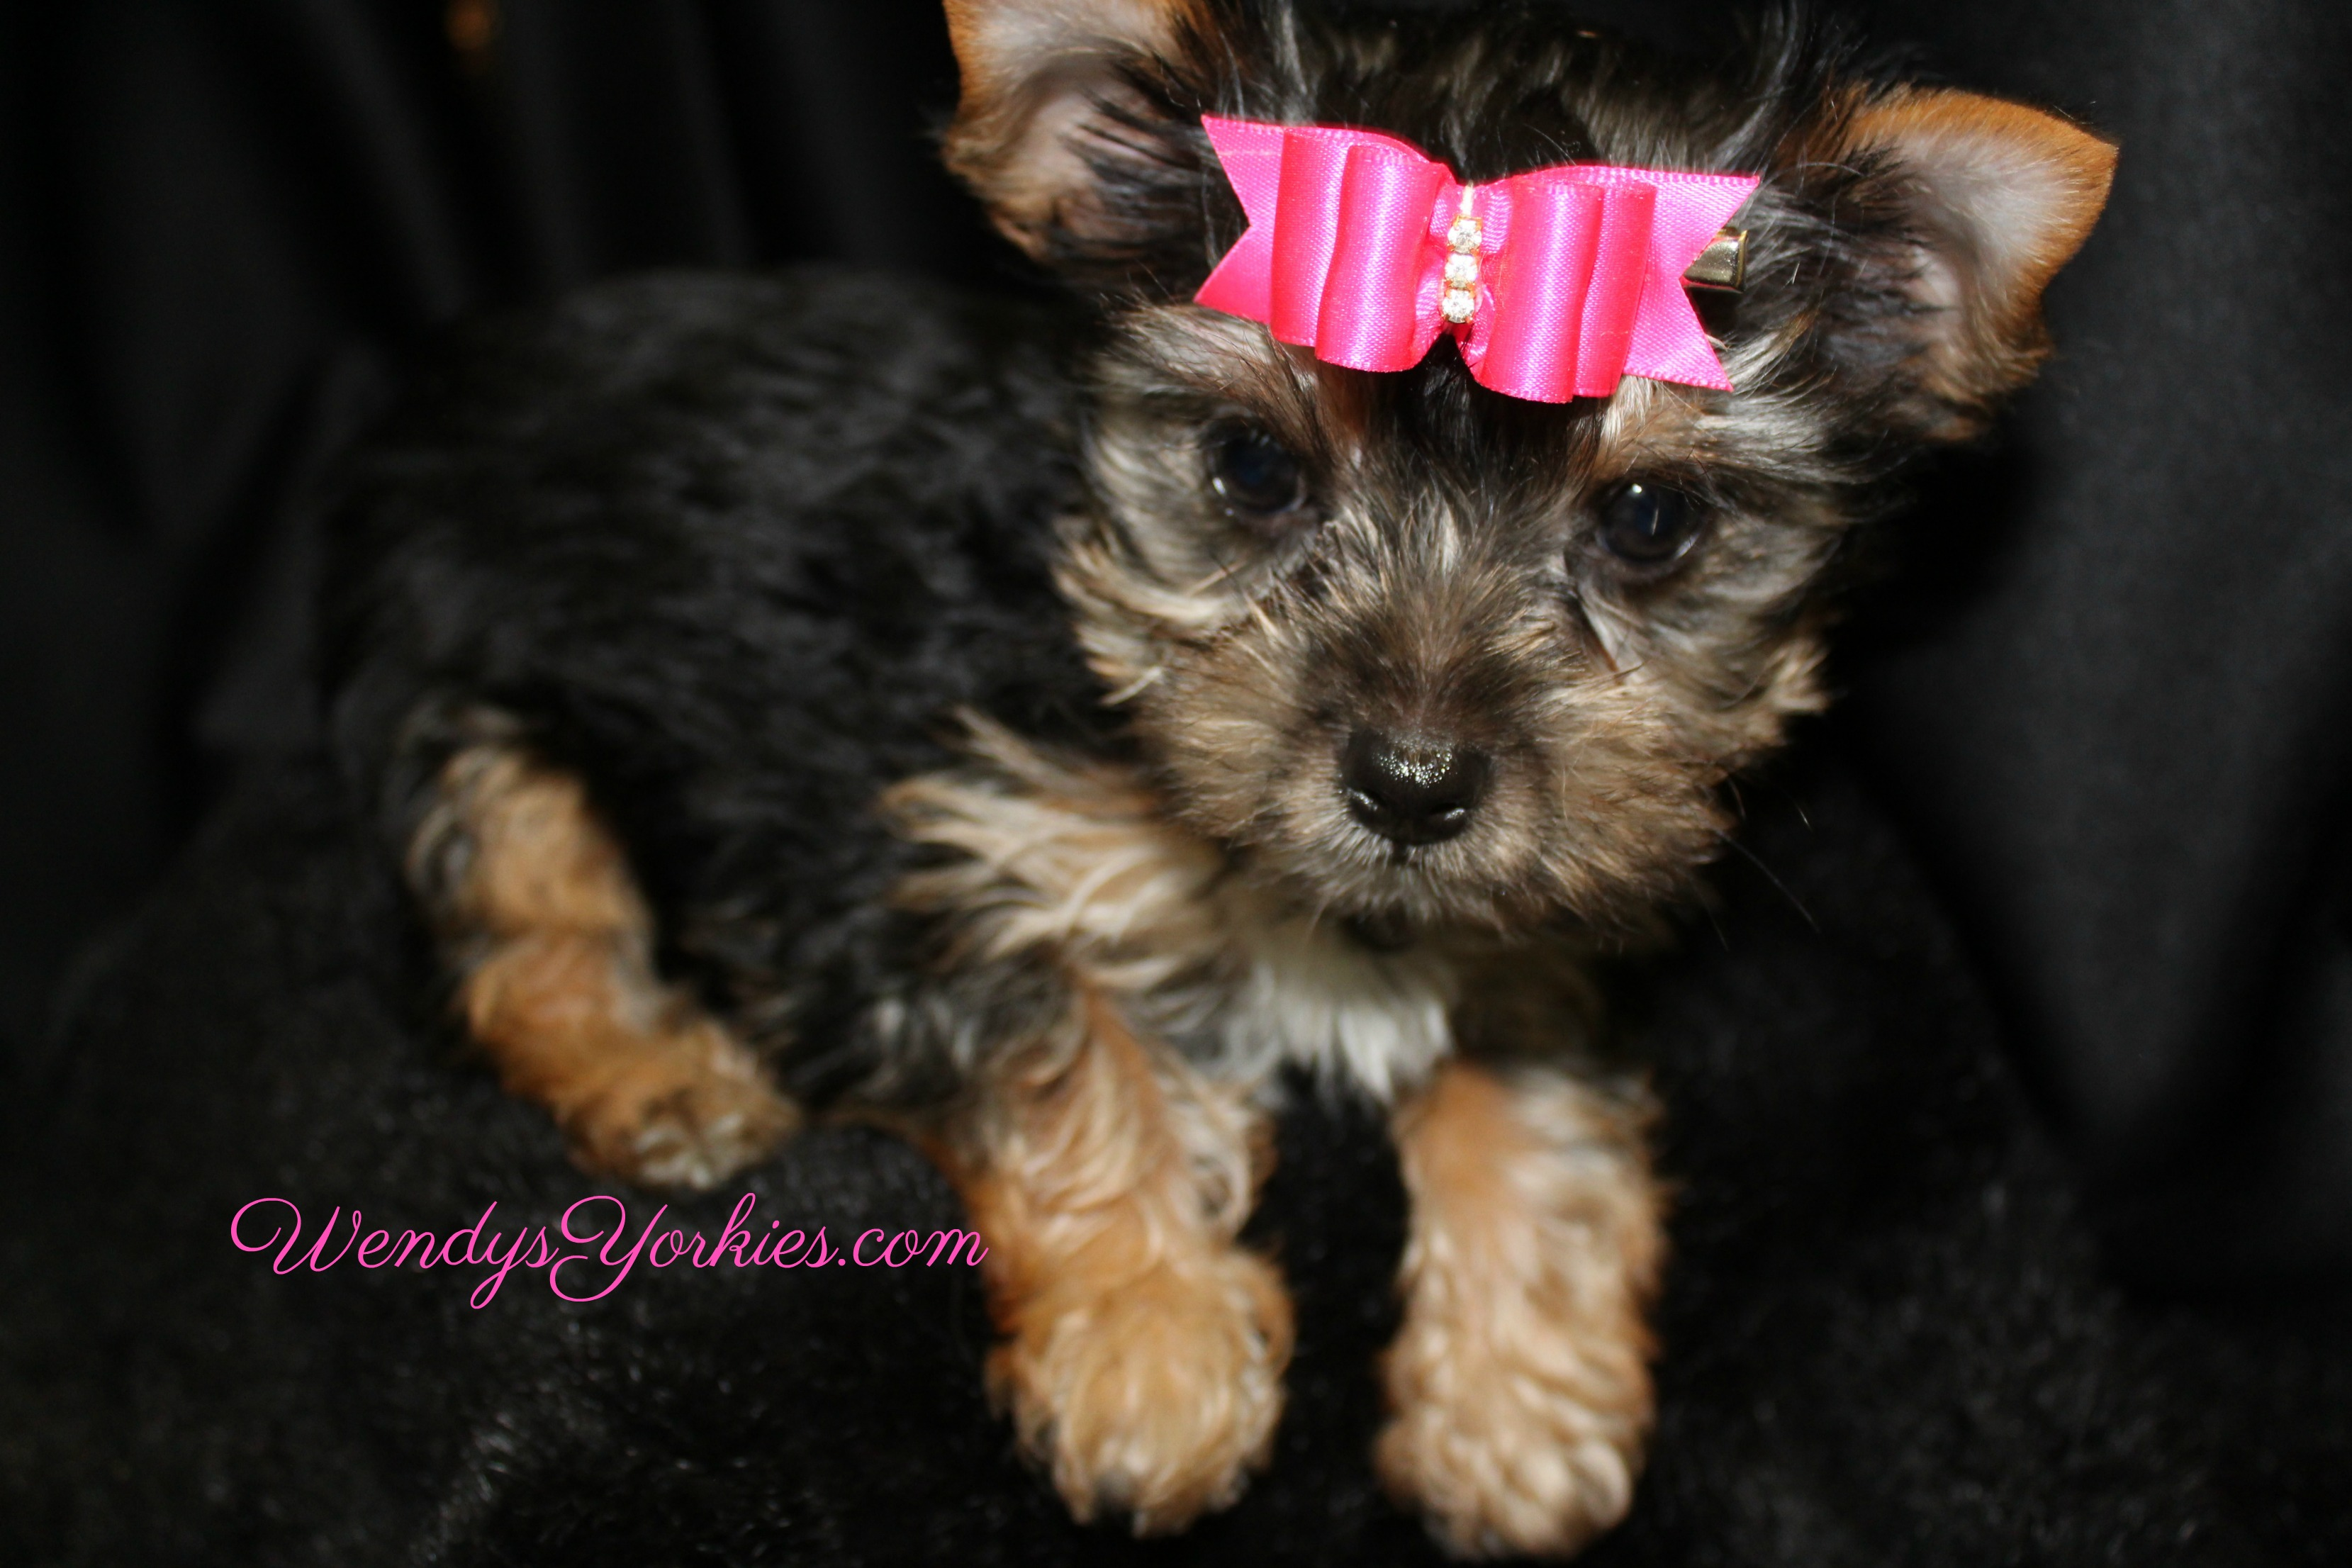 Female YOrkie puppy for sale in Texas, WendysYorkies.com, Loulou f3